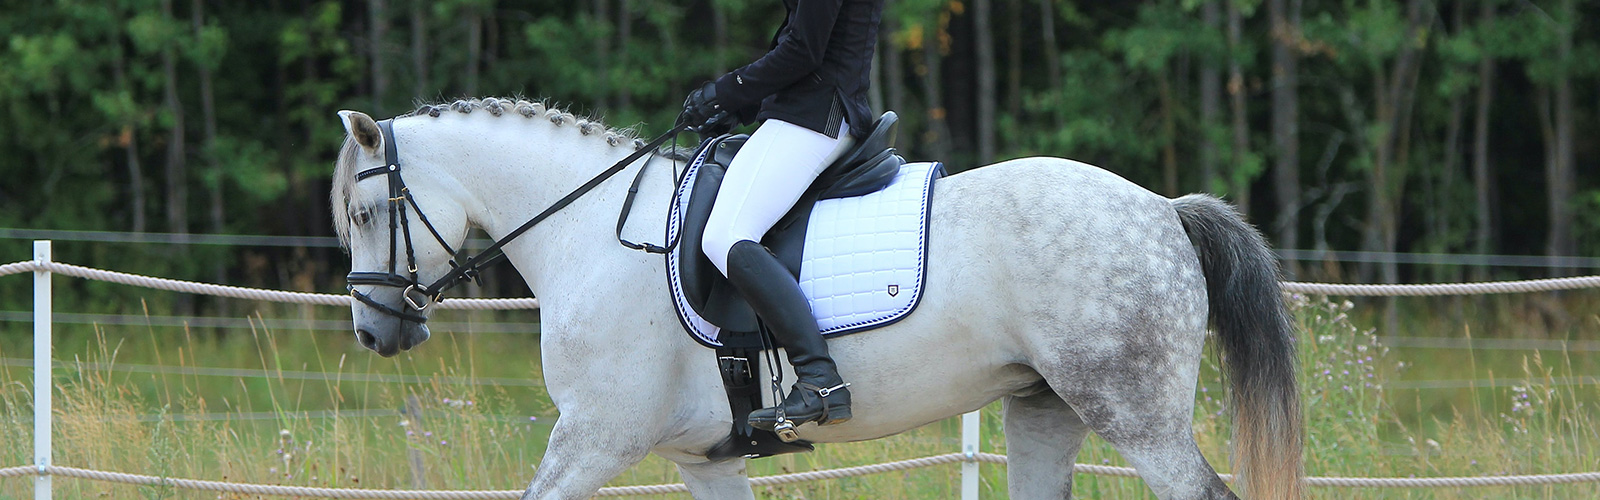 A person in full horse riding uniform riding a white horse